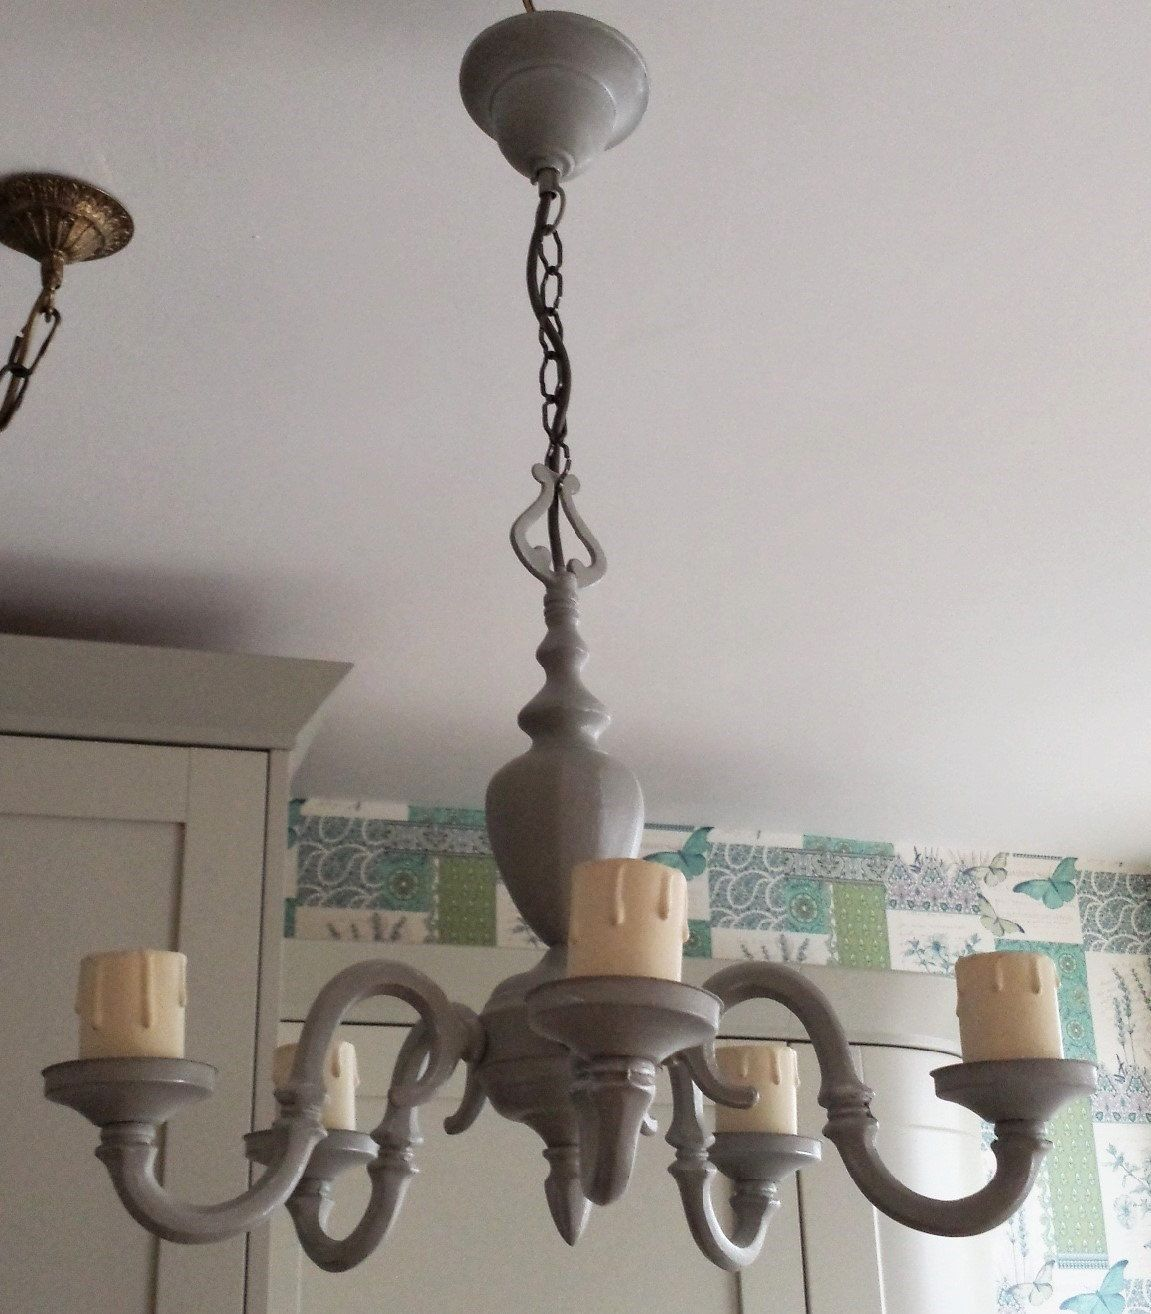 Chandelier light fixture gorgeous paris grey with old white detail chandelier light fixturegorgeous paris grey chalk paint and wax upcycled lighting shabby chic lighting pendant lighting ceiling lighting arubaitofo Gallery